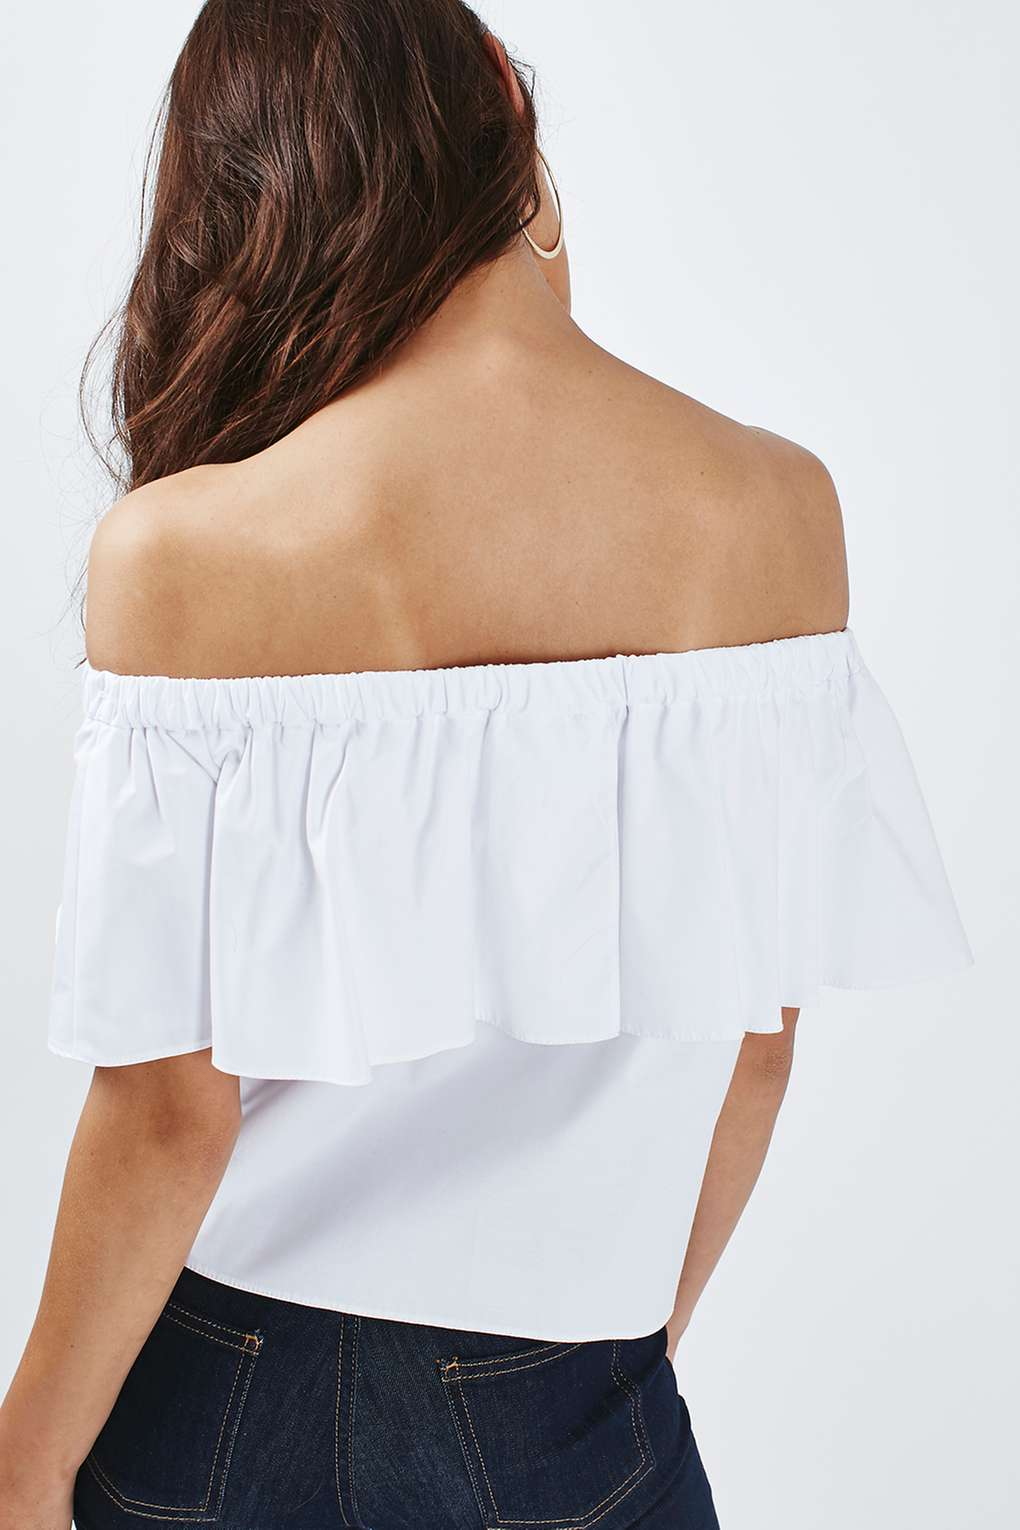 Click here to buy the top